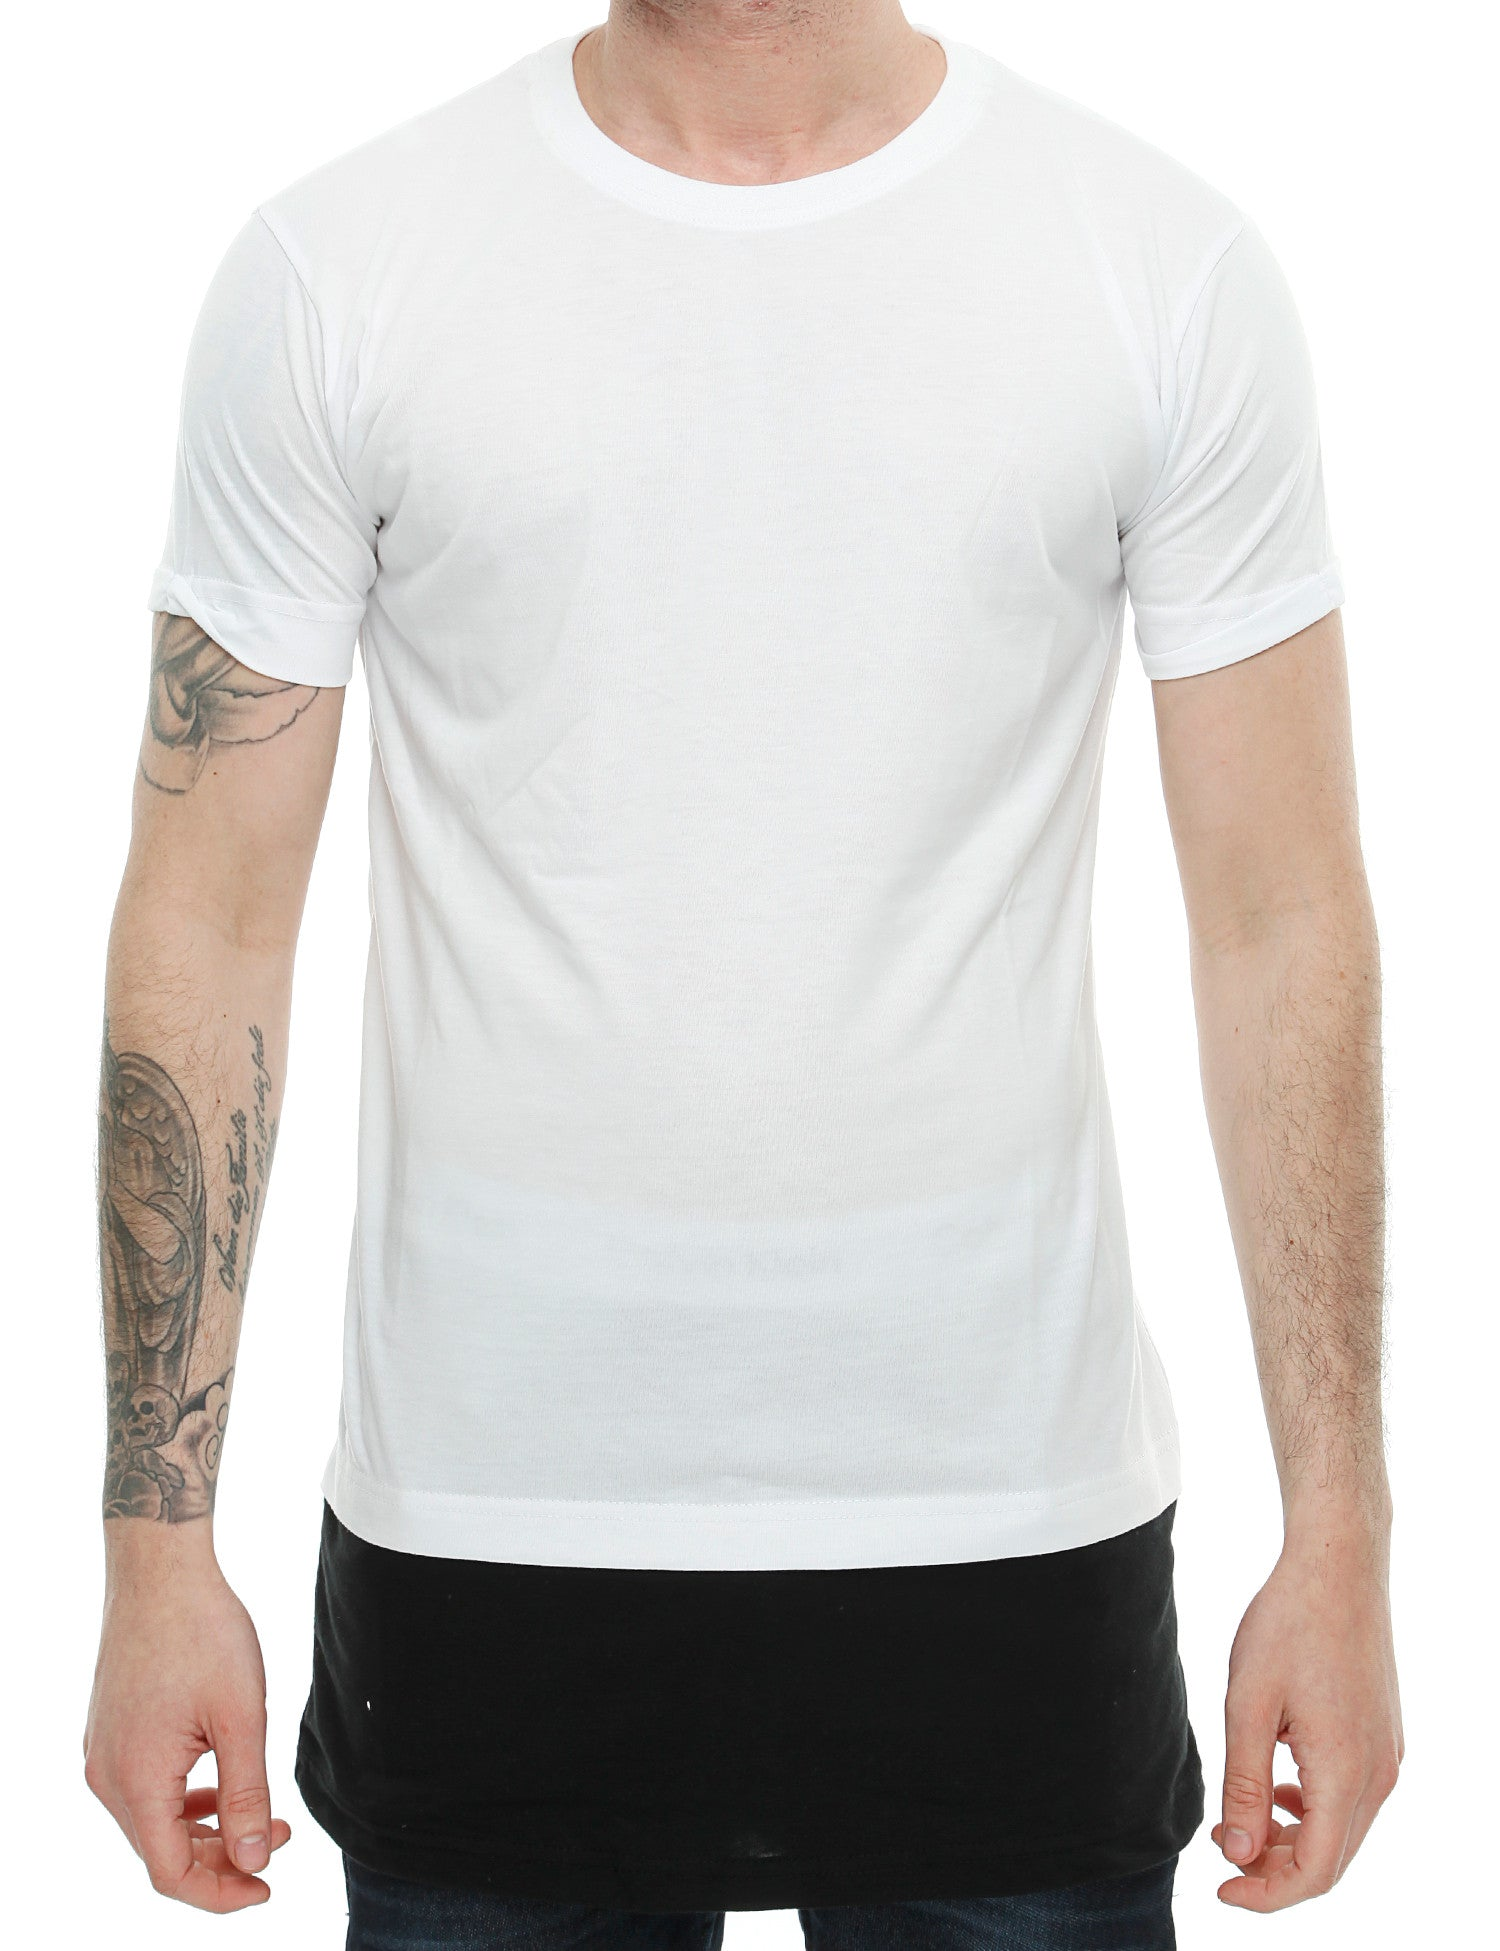 Townz Long Contract Tee TNZ16-014 White